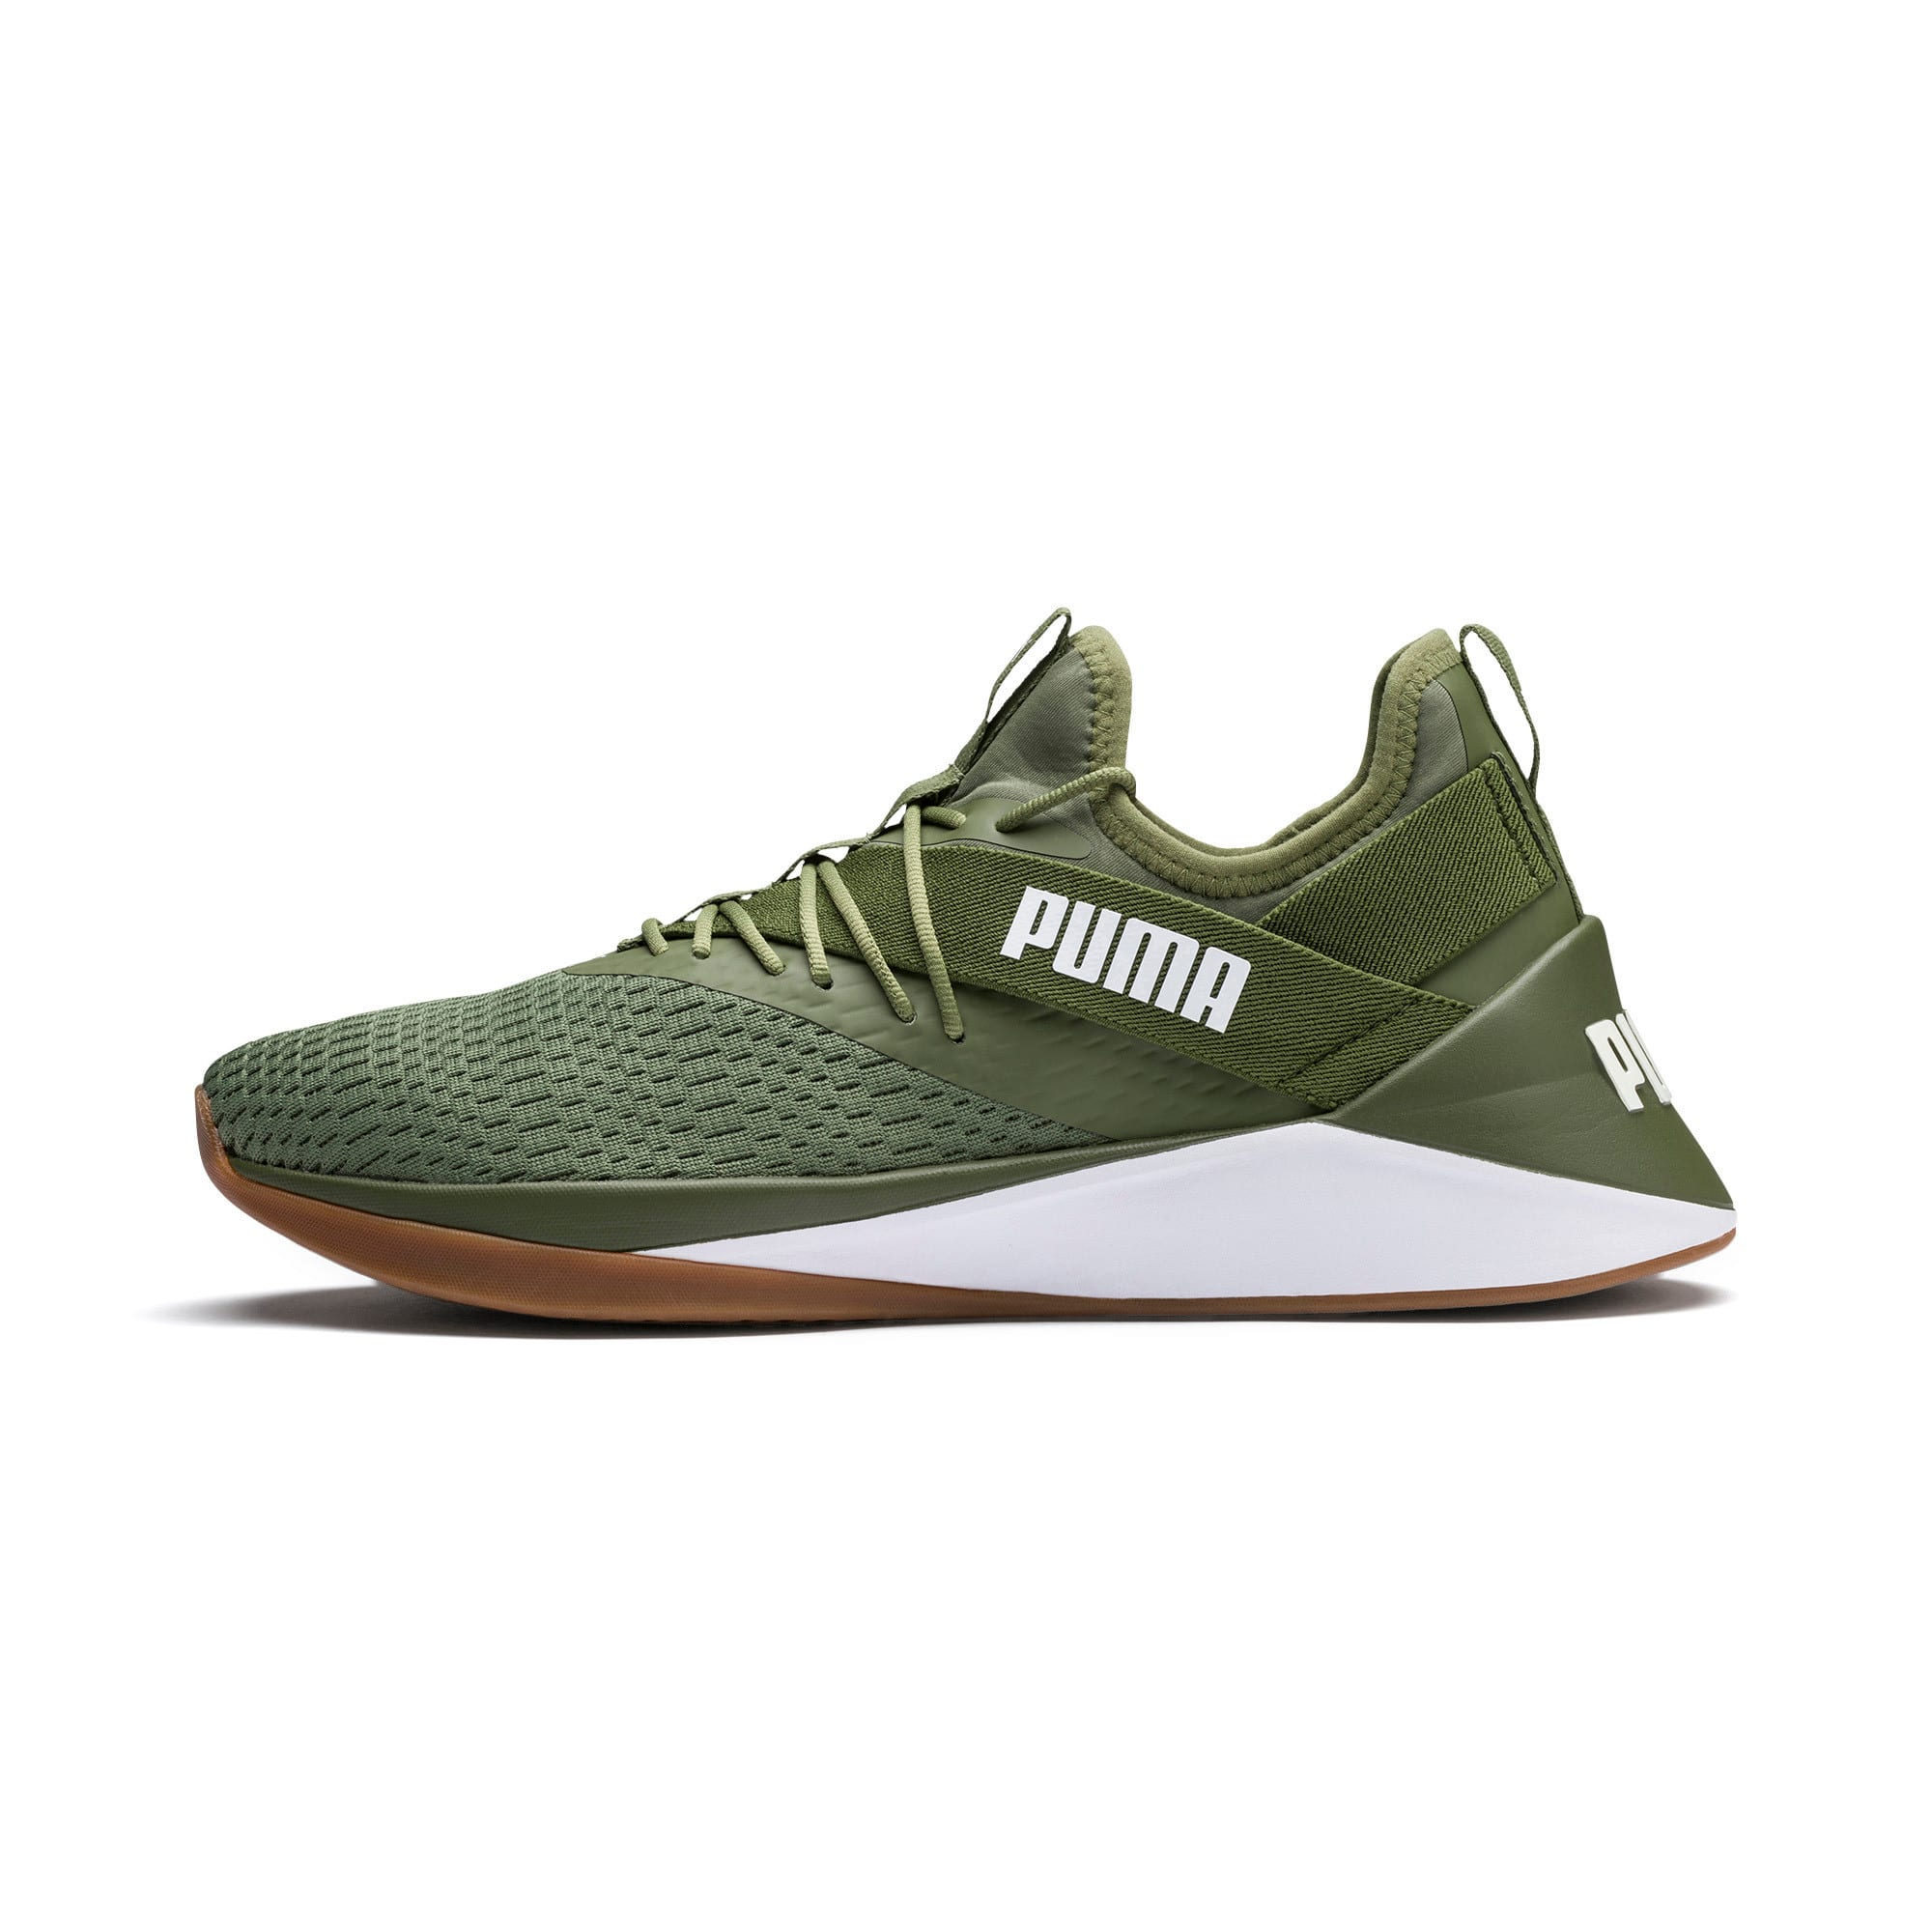 Thumbnail 1 of Jaab XT Summer Herren Sneaker, Olivine-Puma White, medium